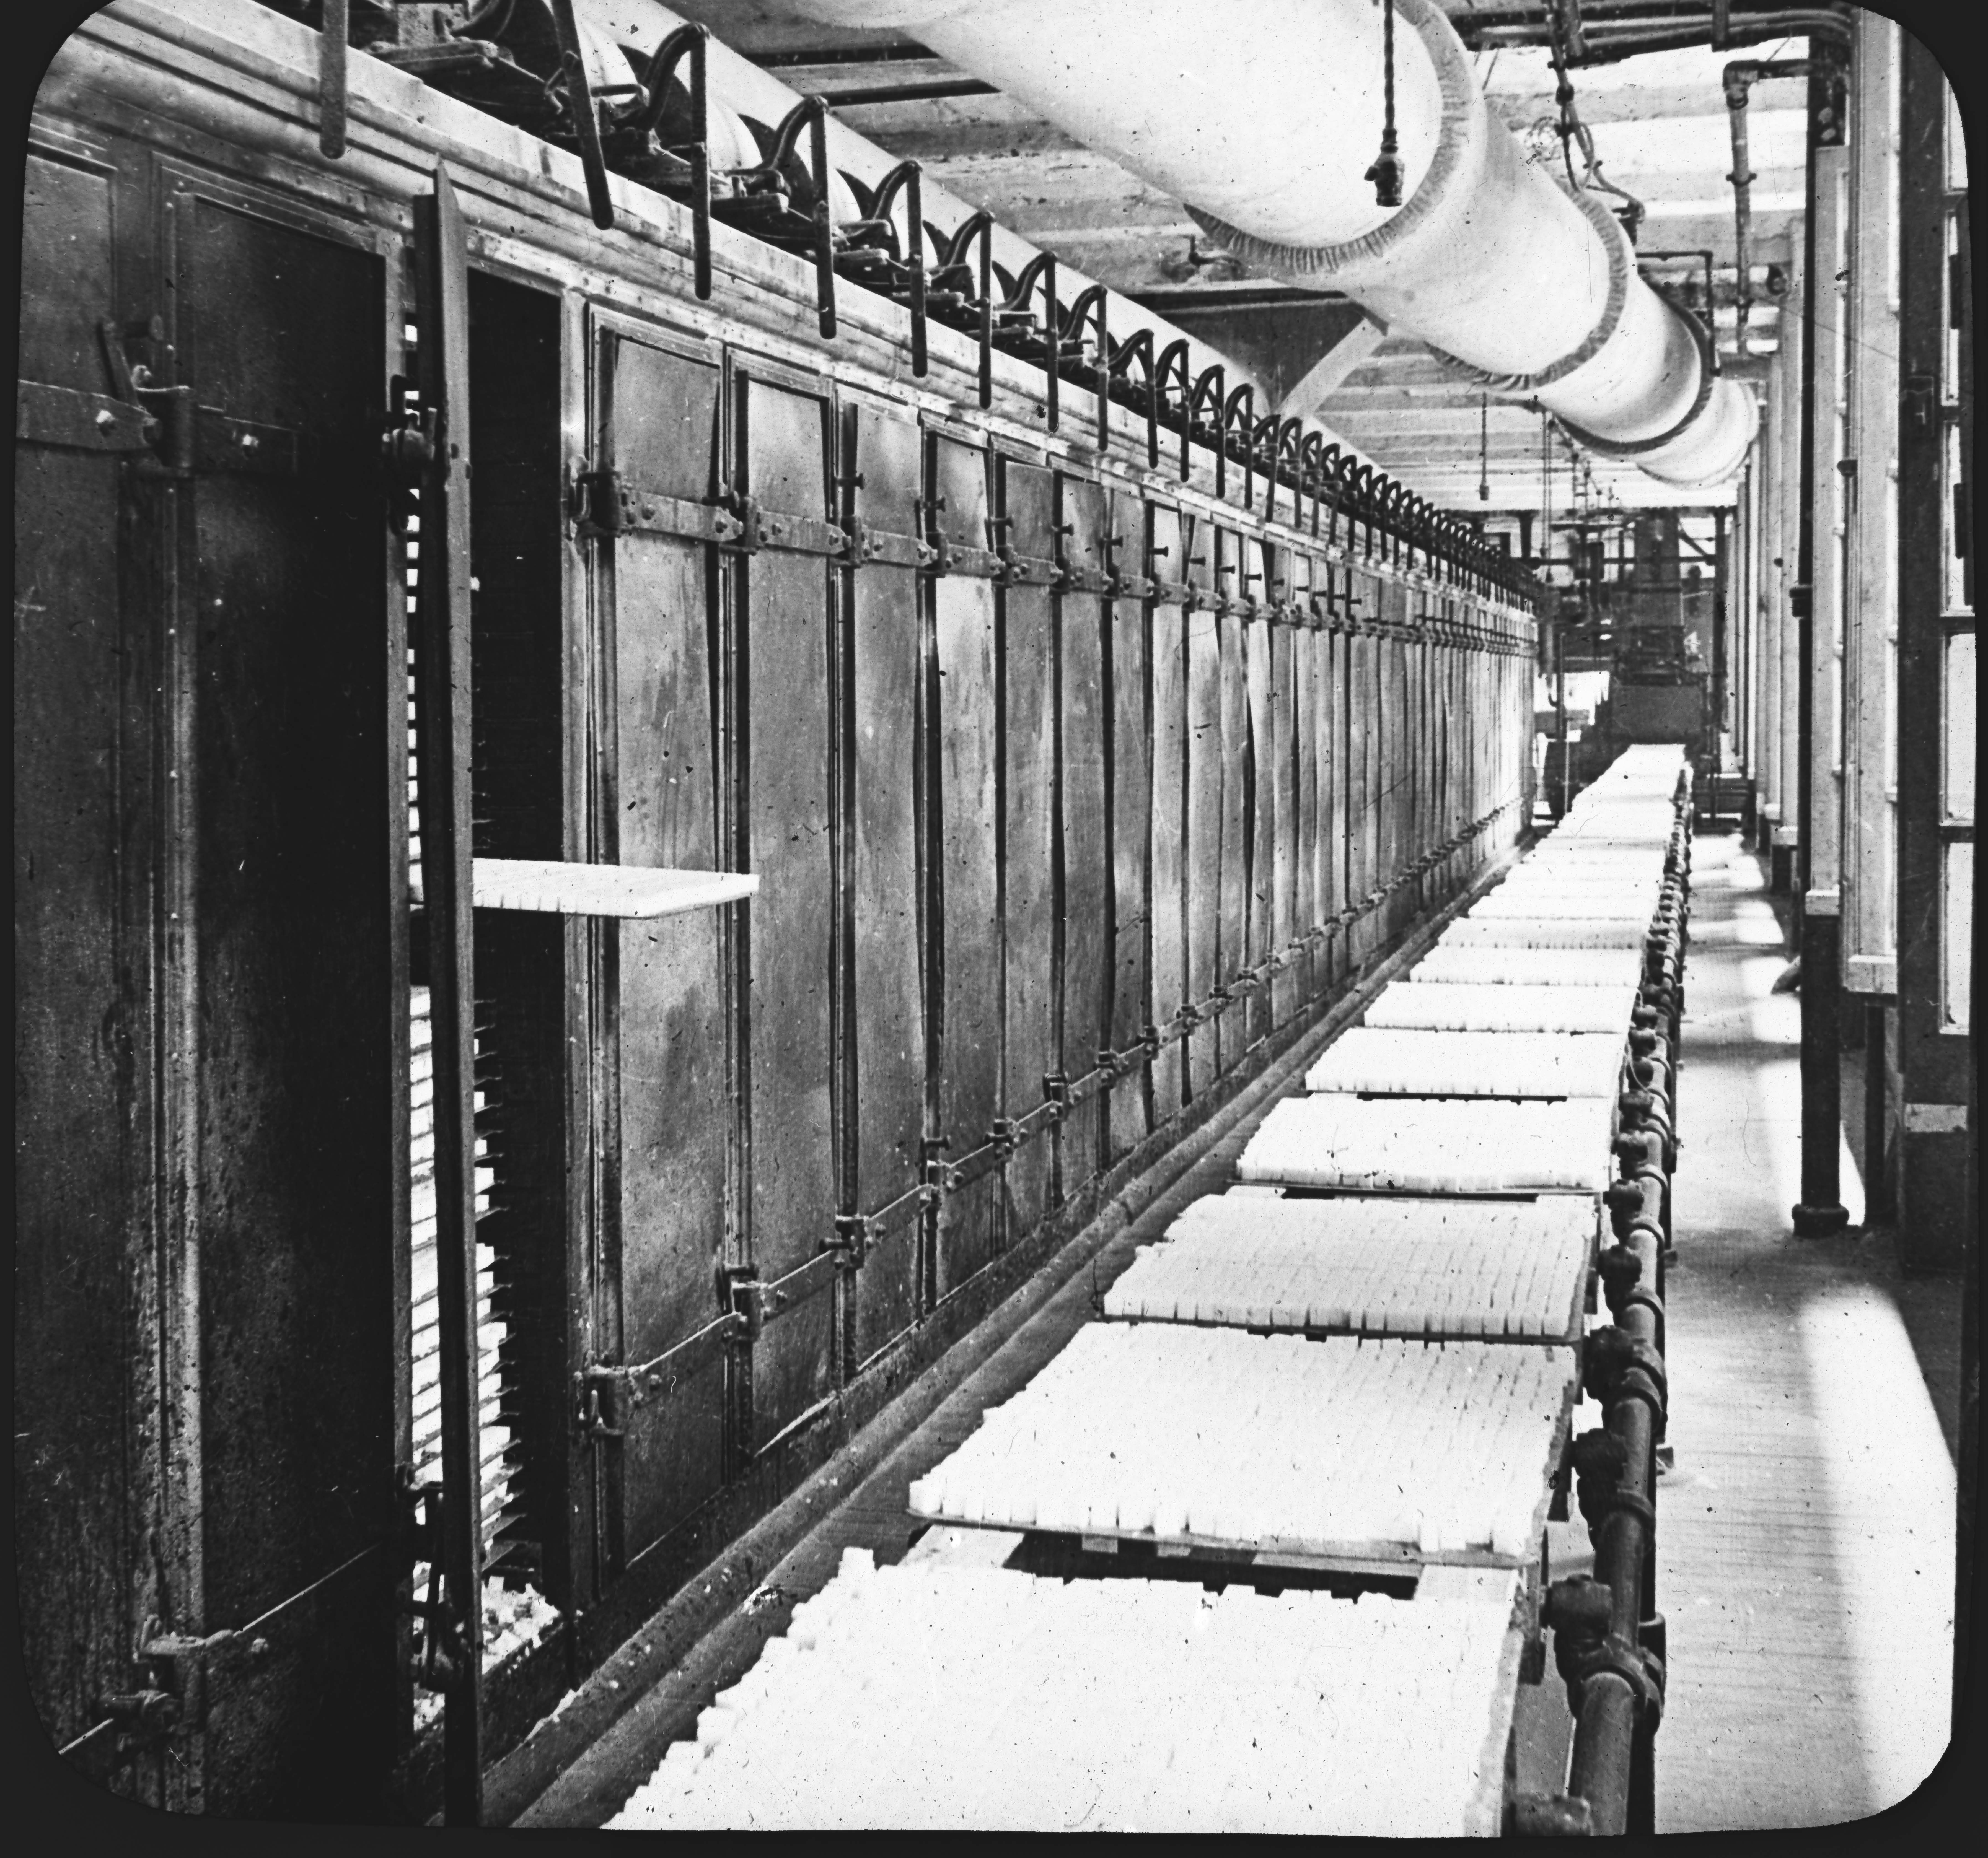 Conveyor with Loaf Sugar from Drying Kiln, New York City.